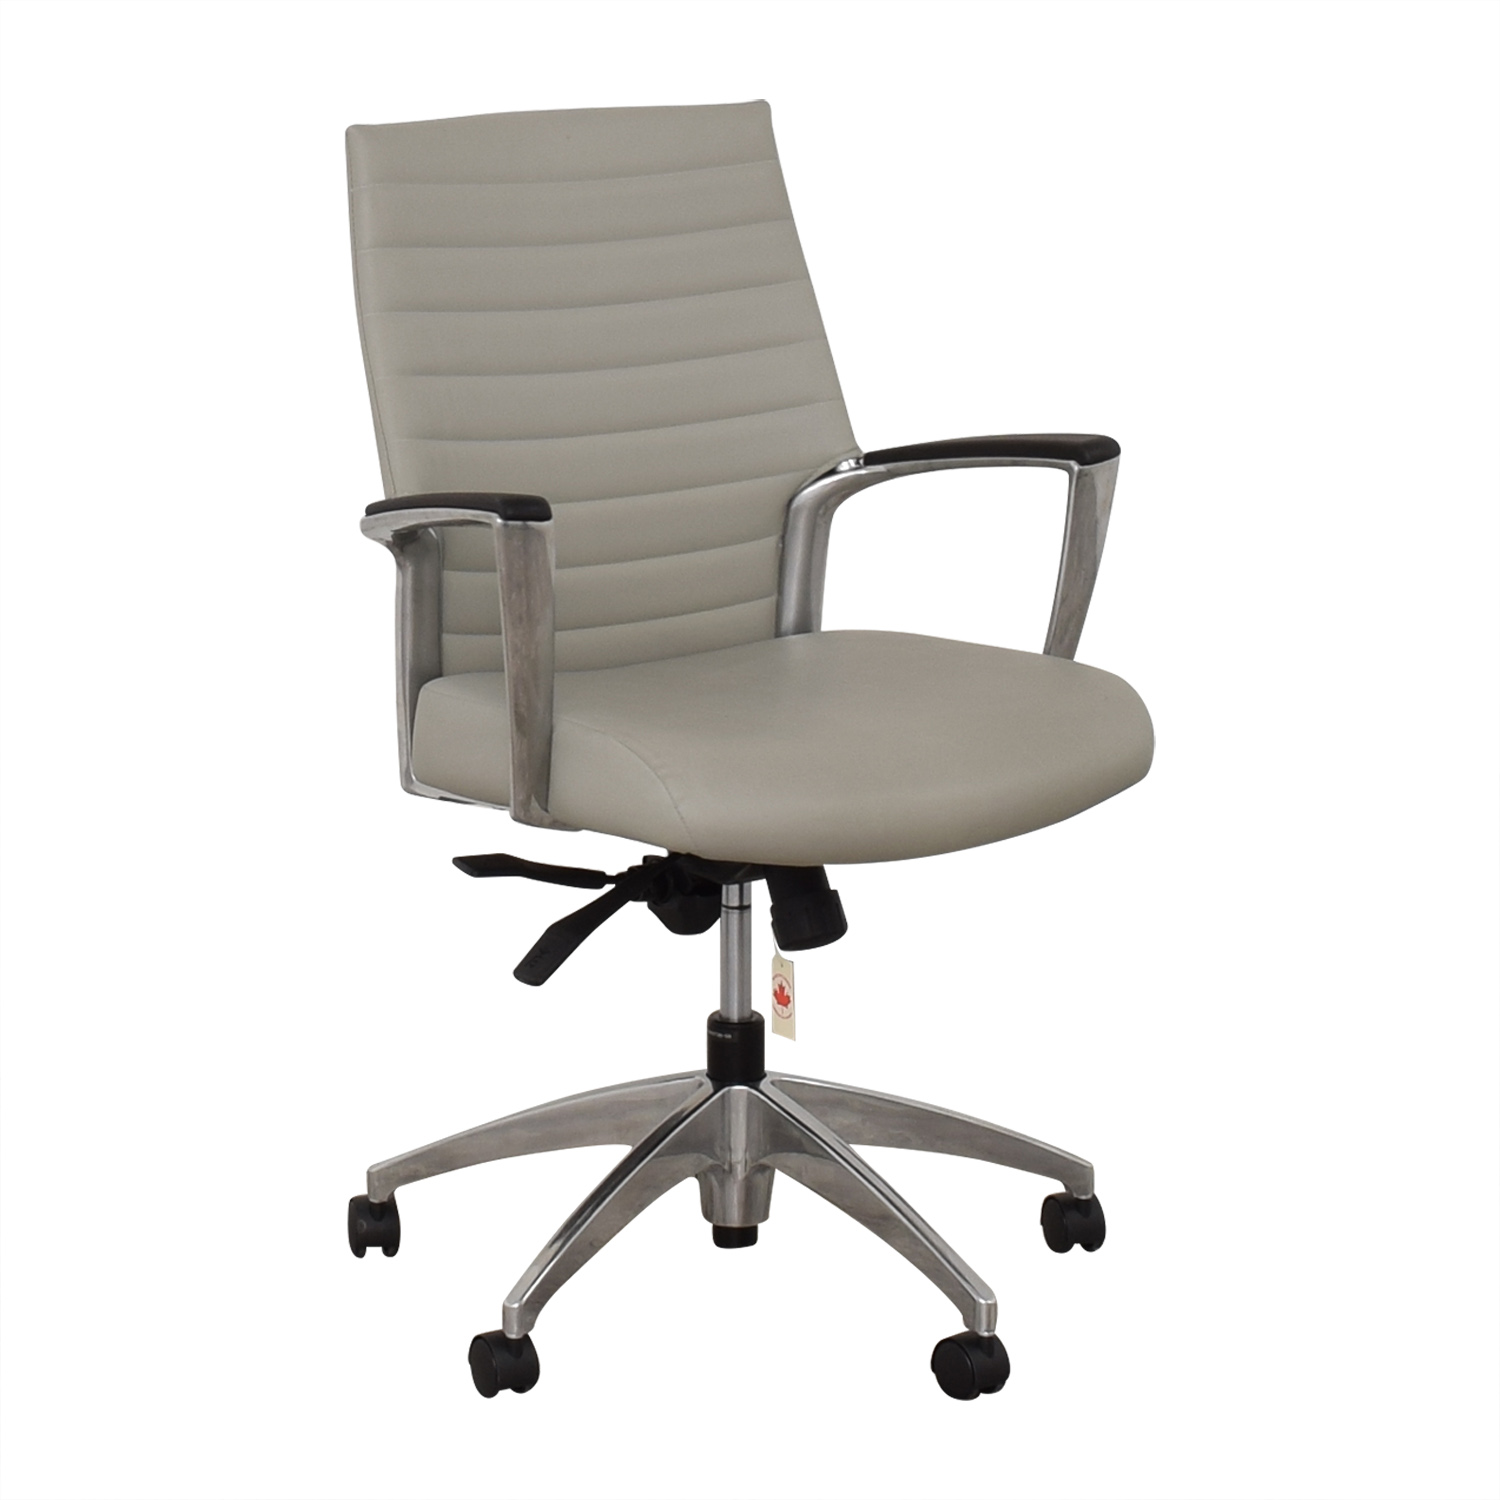 Global Global Accord Upholstered Medium Back Tilter Chair Home Office Chairs